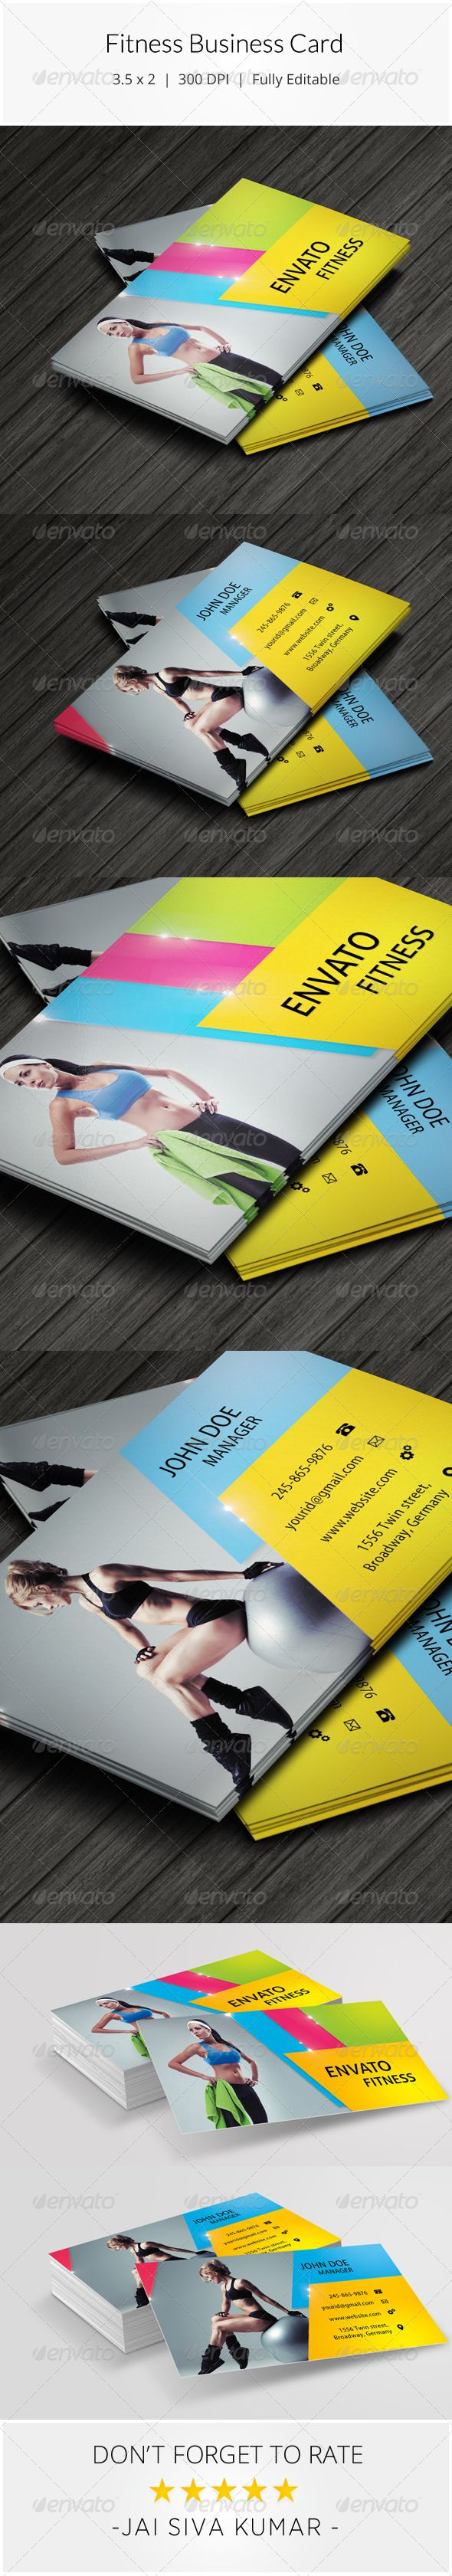 10 best Fitness business card images on Pinterest | Business cards ...